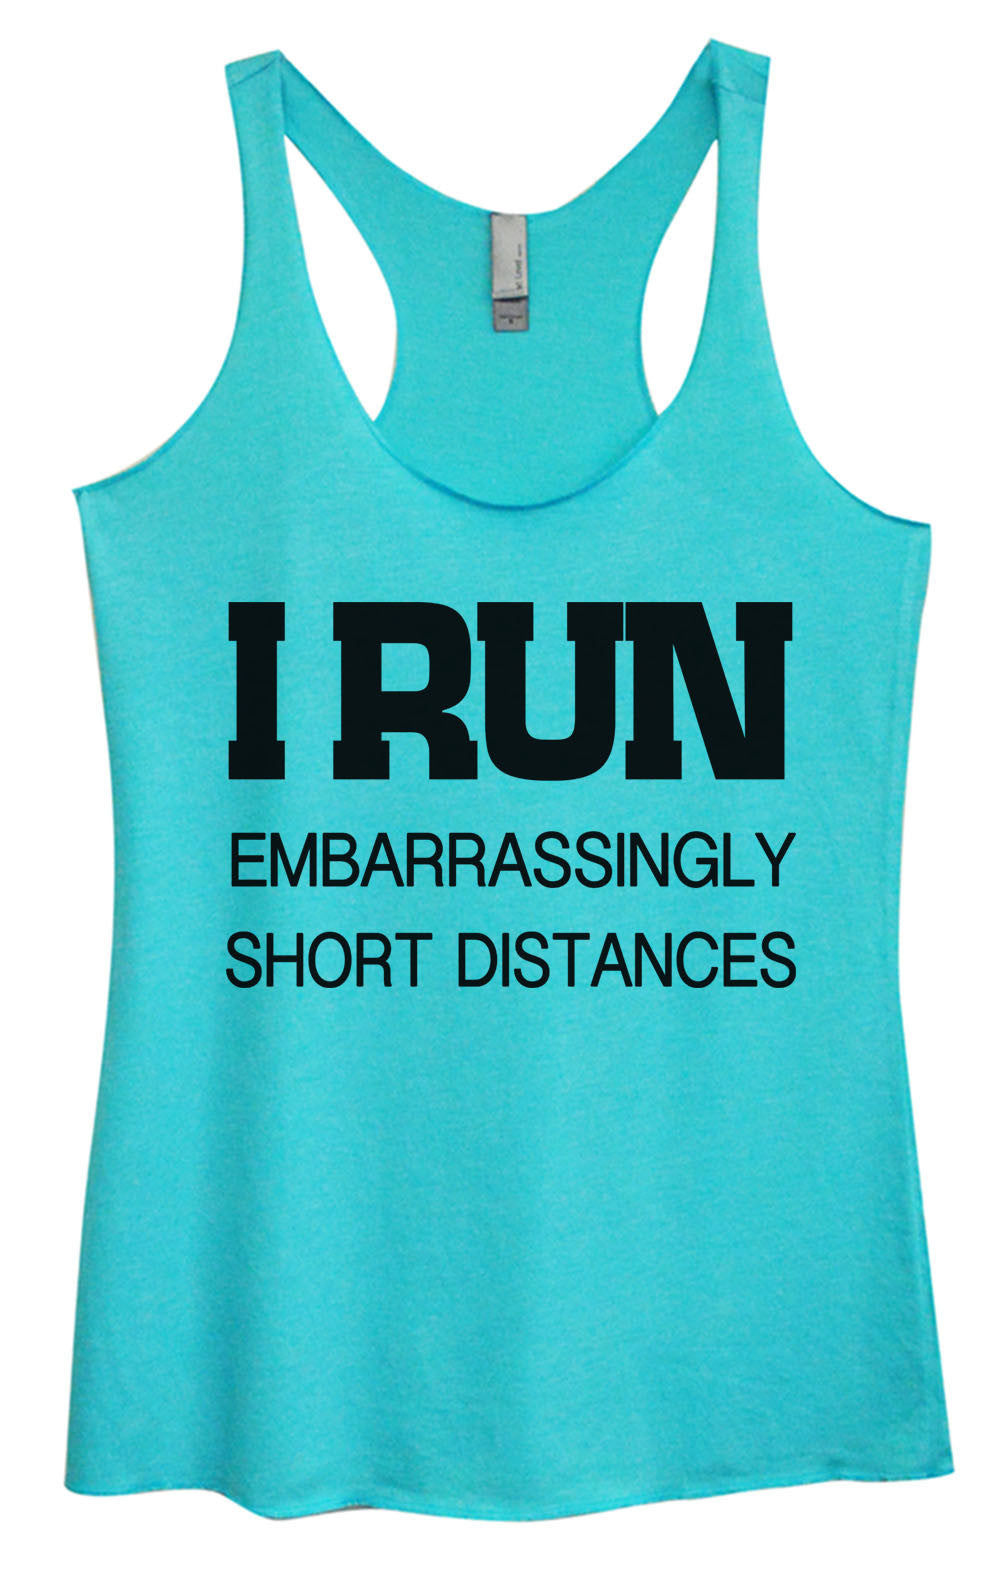 Womens Fashion Triblend Tank Top - I Run Embarrassingly Short Distances - Tri-733 - Funny Shirts Tank Tops Burnouts and Triblends  - 2